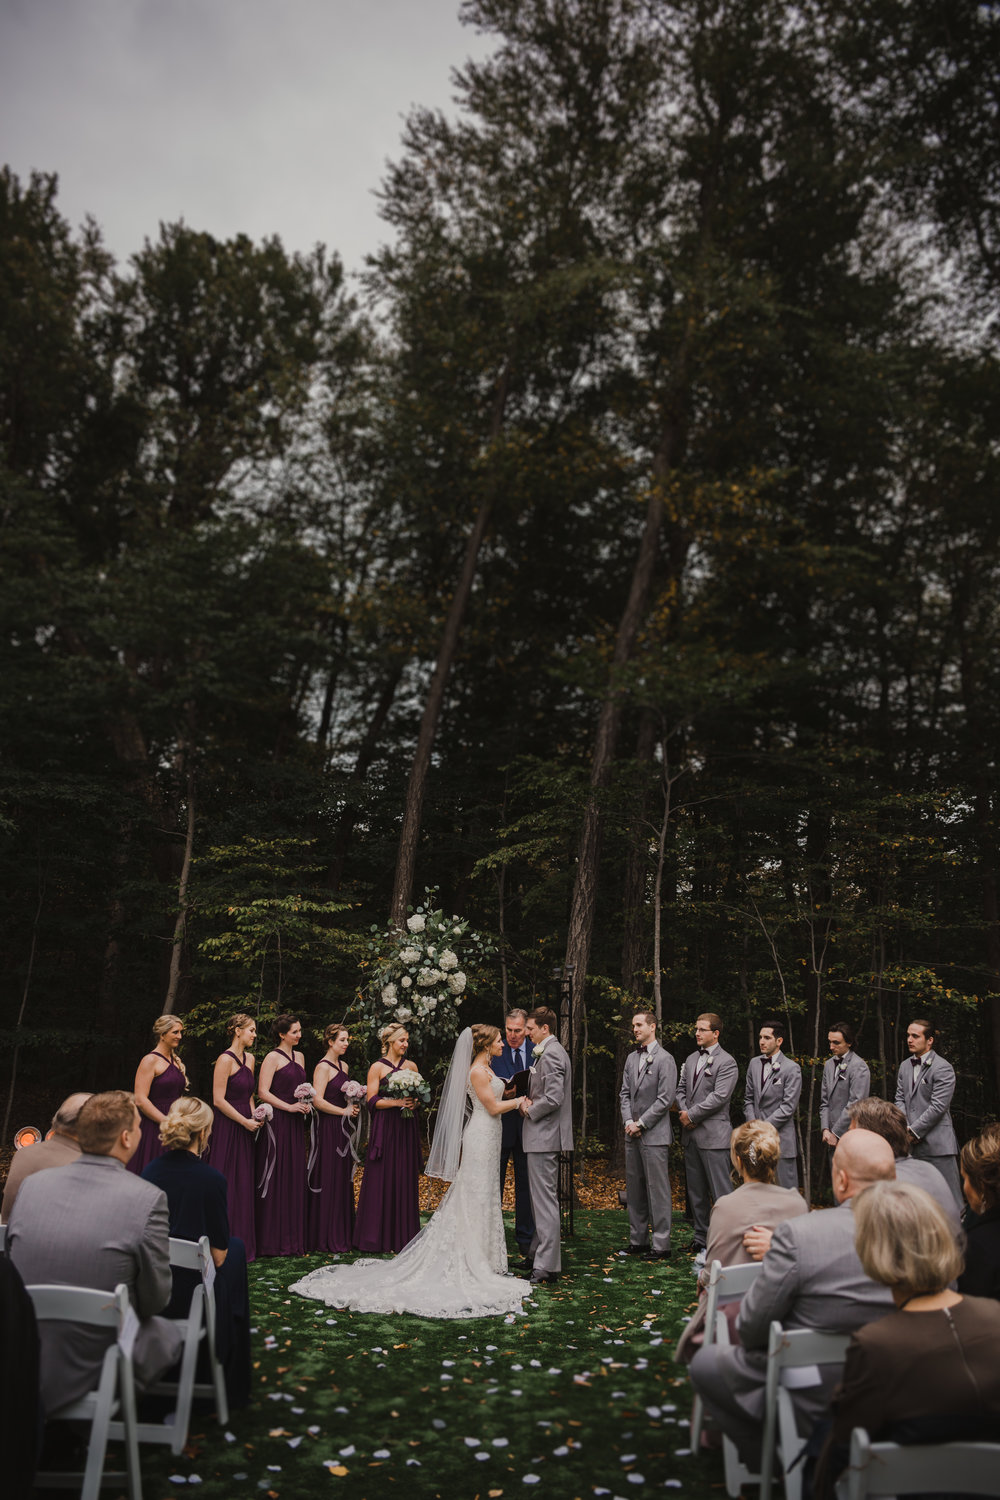 Real Weddings - CLICK THROUGH TO OOH AND AHH YOUR WAY THROUGH MY AMAZING COUPLE'S WEDDING GALLERIES